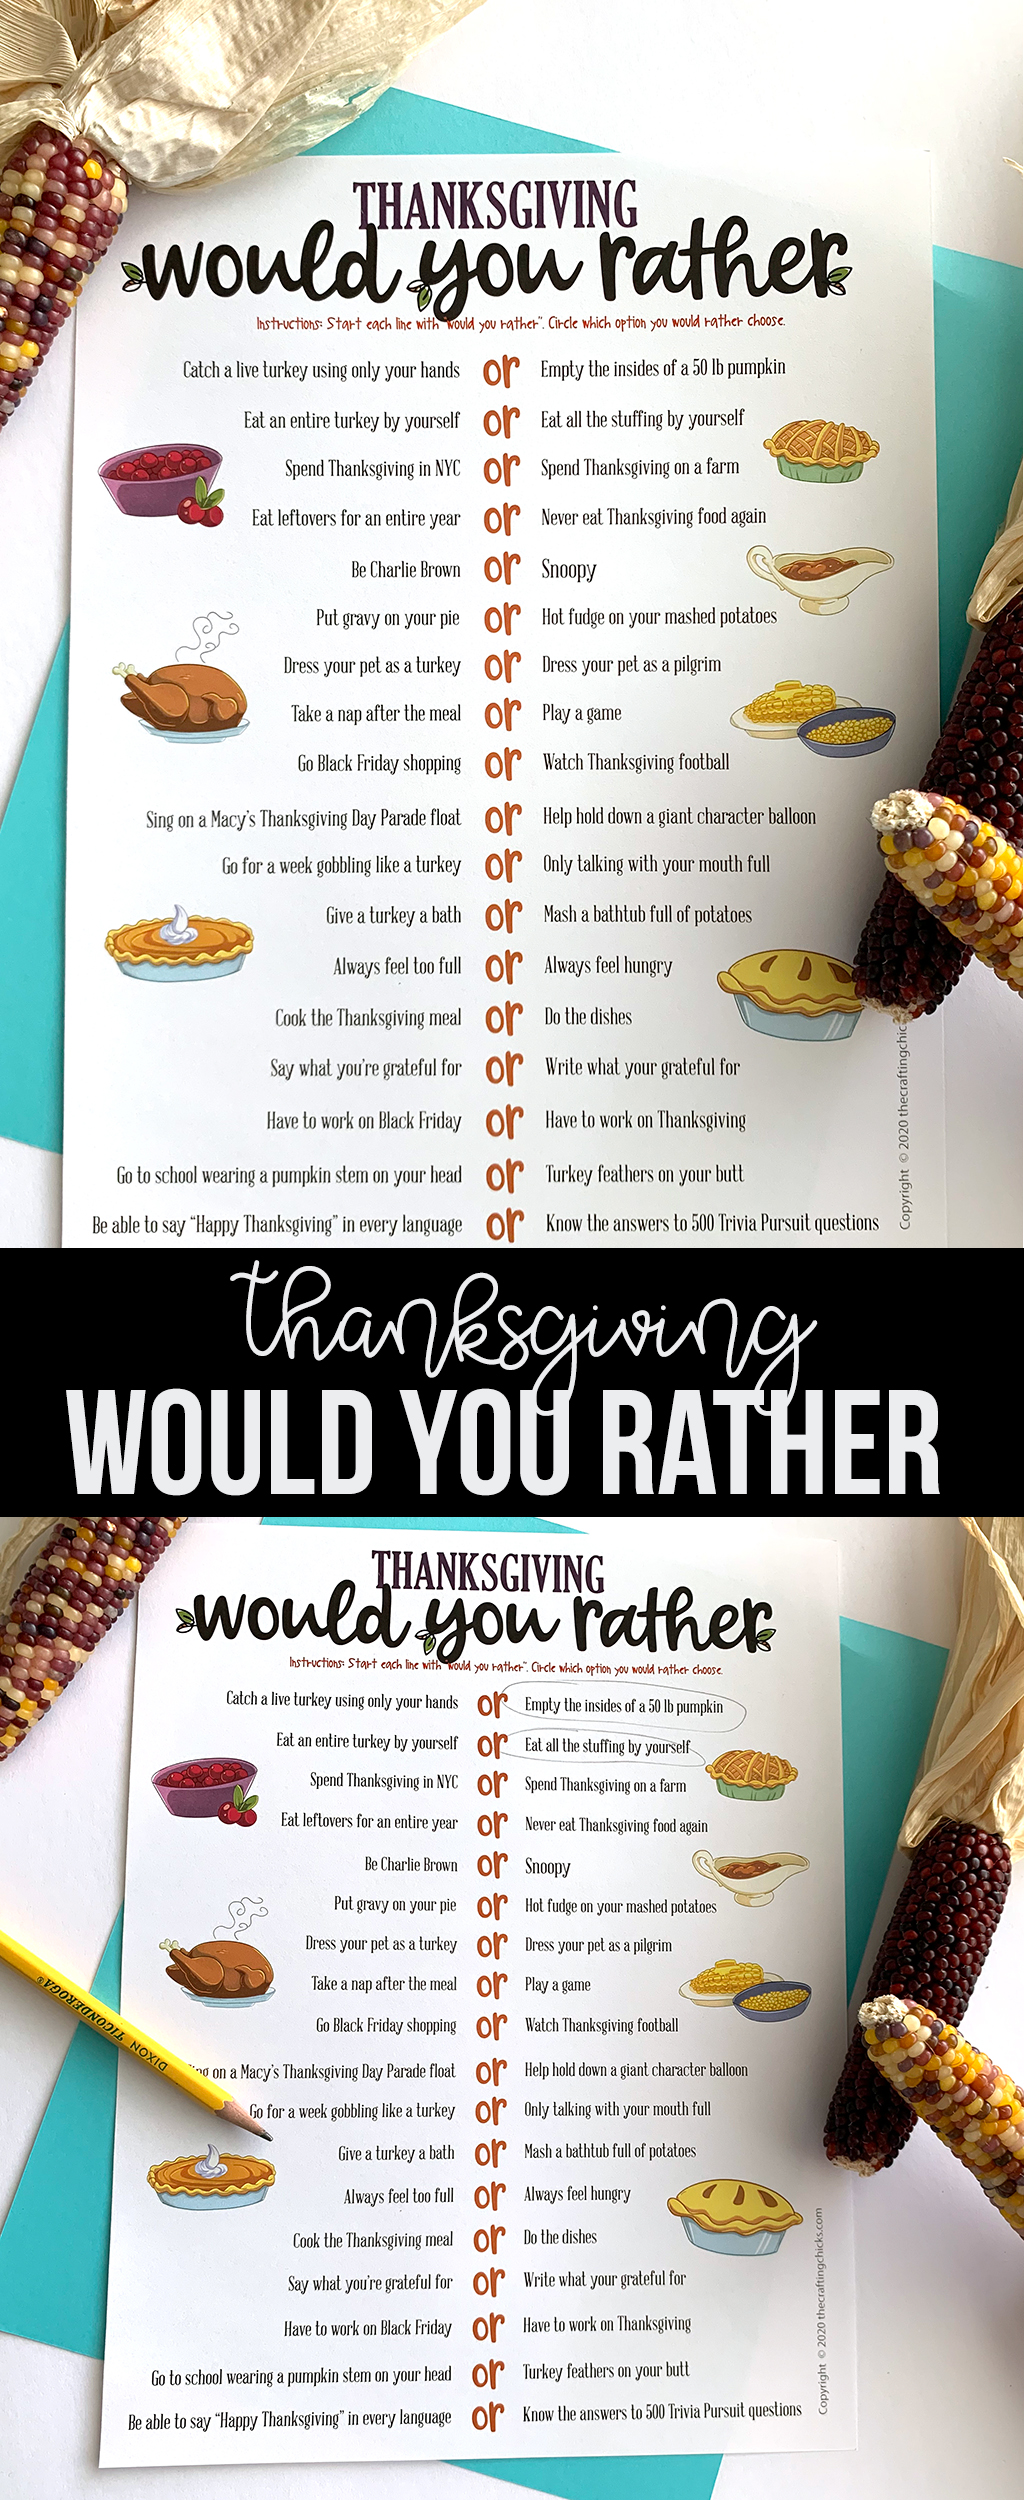 Need a fun game to play around your Thanksgiving table? Our Thanksgiving Would You Rather Free Printable Game will have everyone laughing. #thanksgiving #thanksgivinggame #thanksgivingprintable